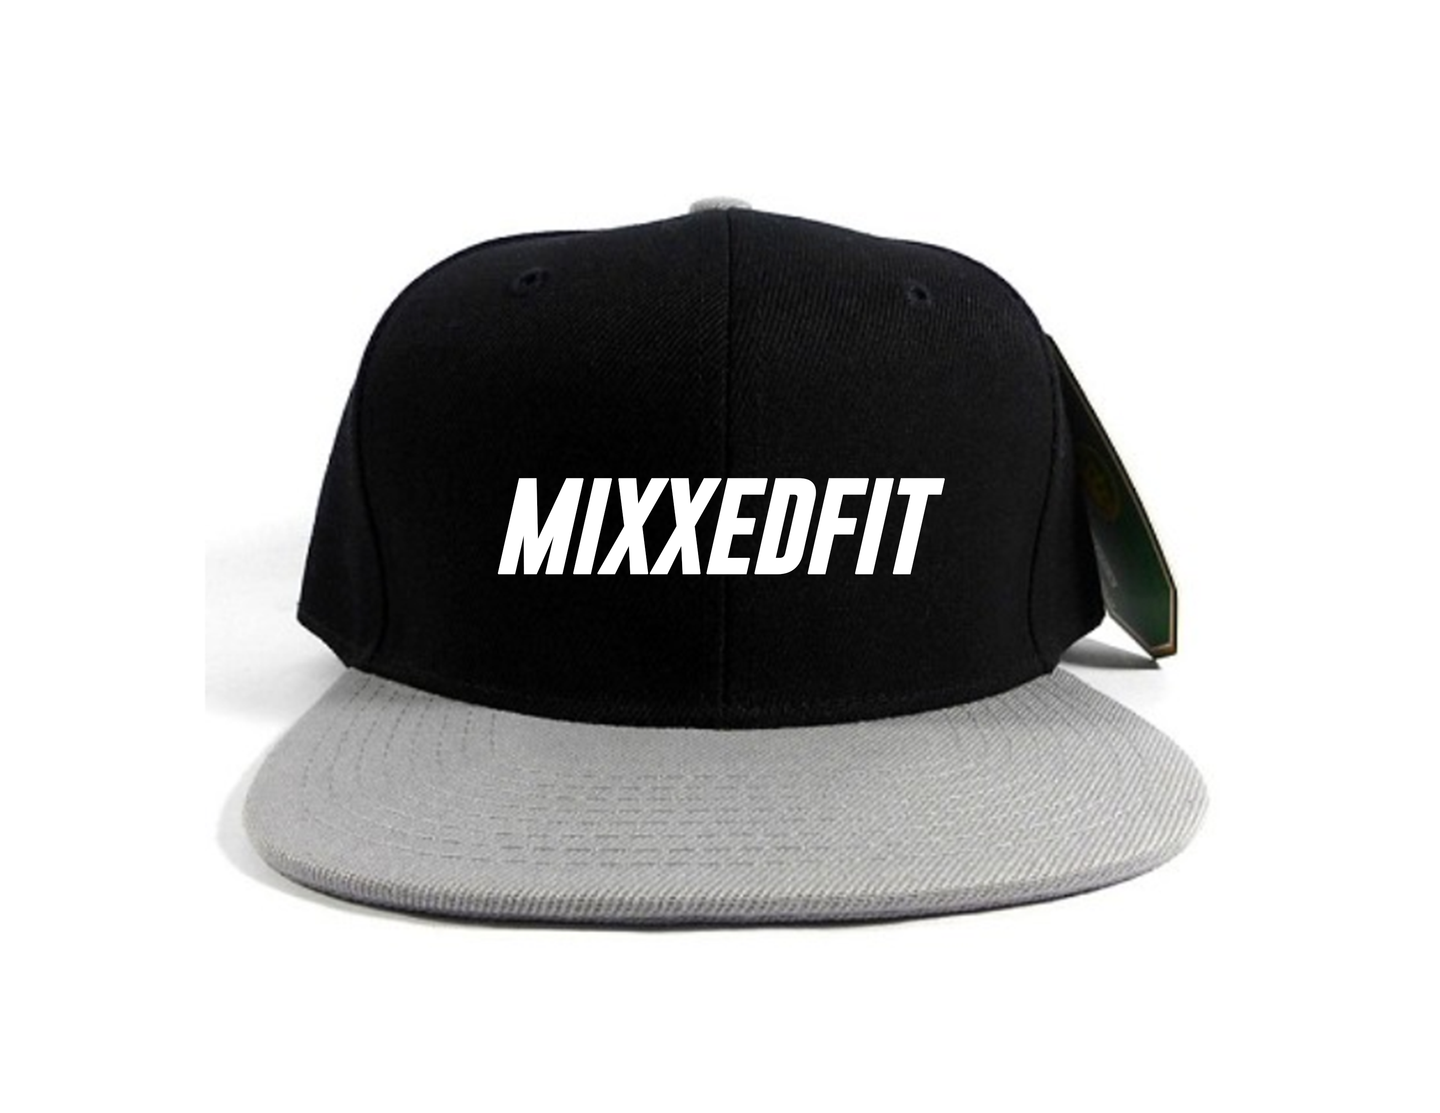 MIXXEDFIT® SNAP BACK BLACK & GRAY